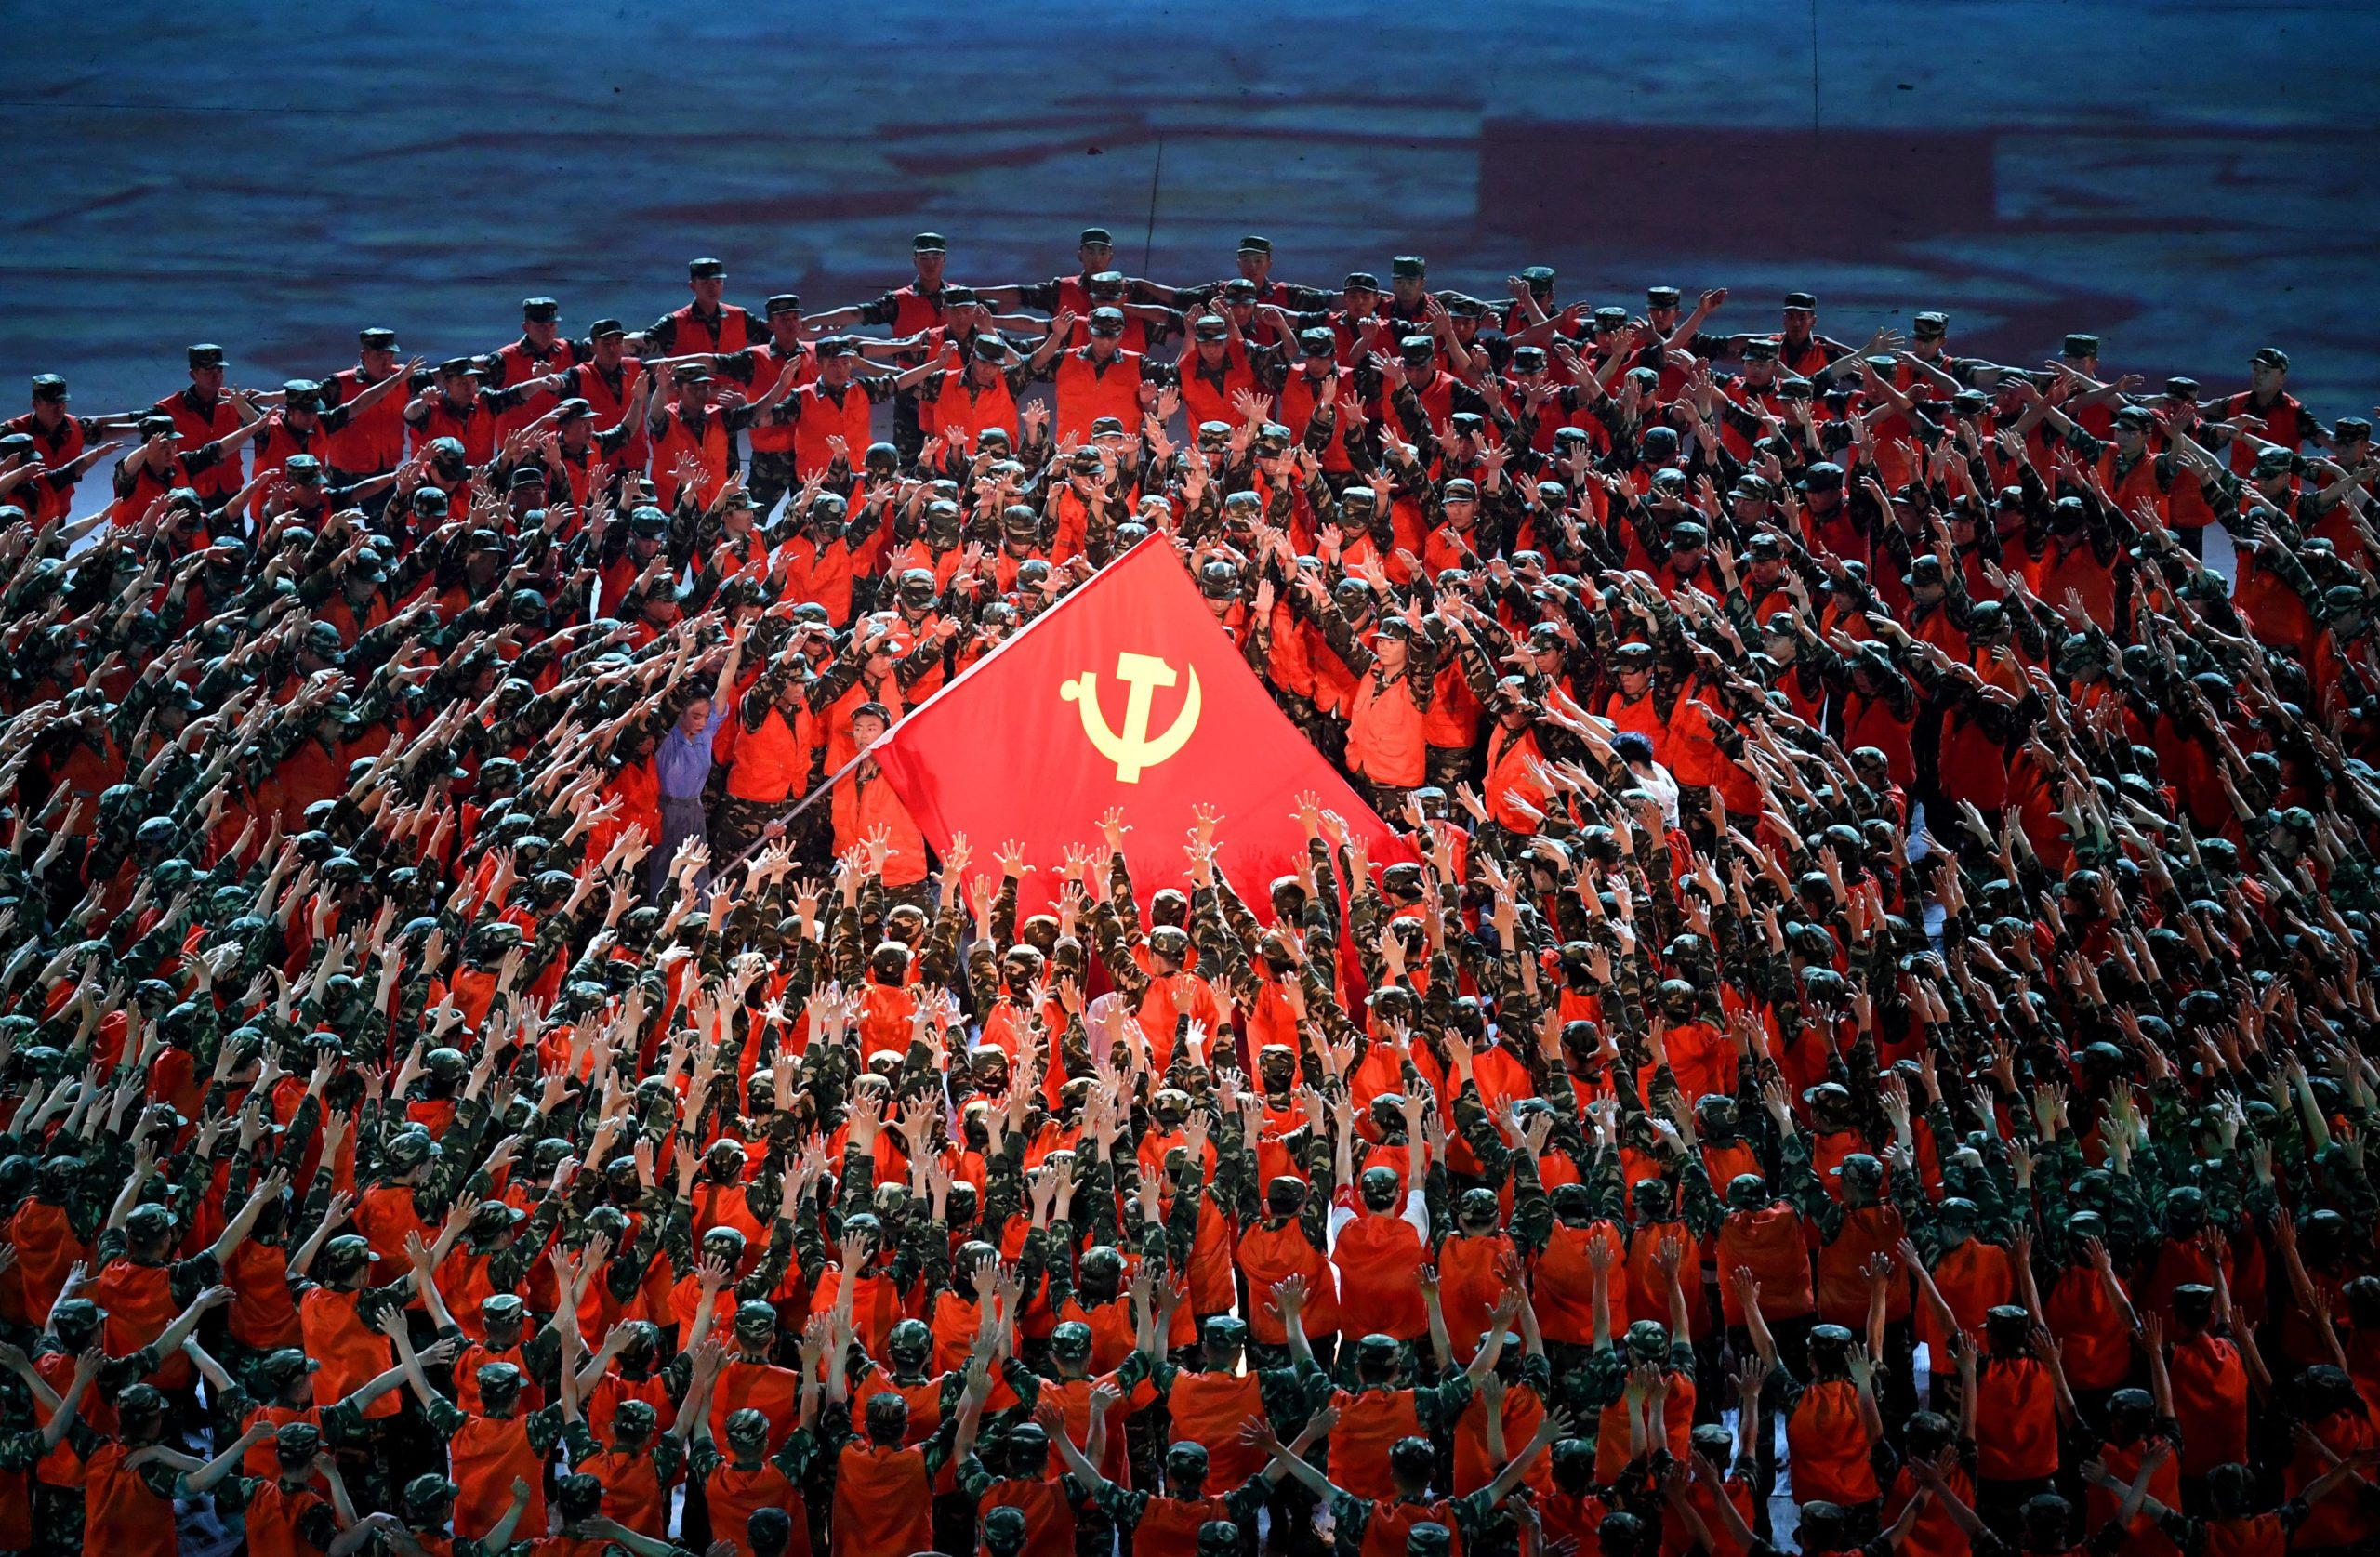 Performers dance during a Cultural Performance as part of the celebration of the 100th Anniversary of the Founding of the Communist Party of China. (Photo by NOEL CELIS/AFP via Getty Images)